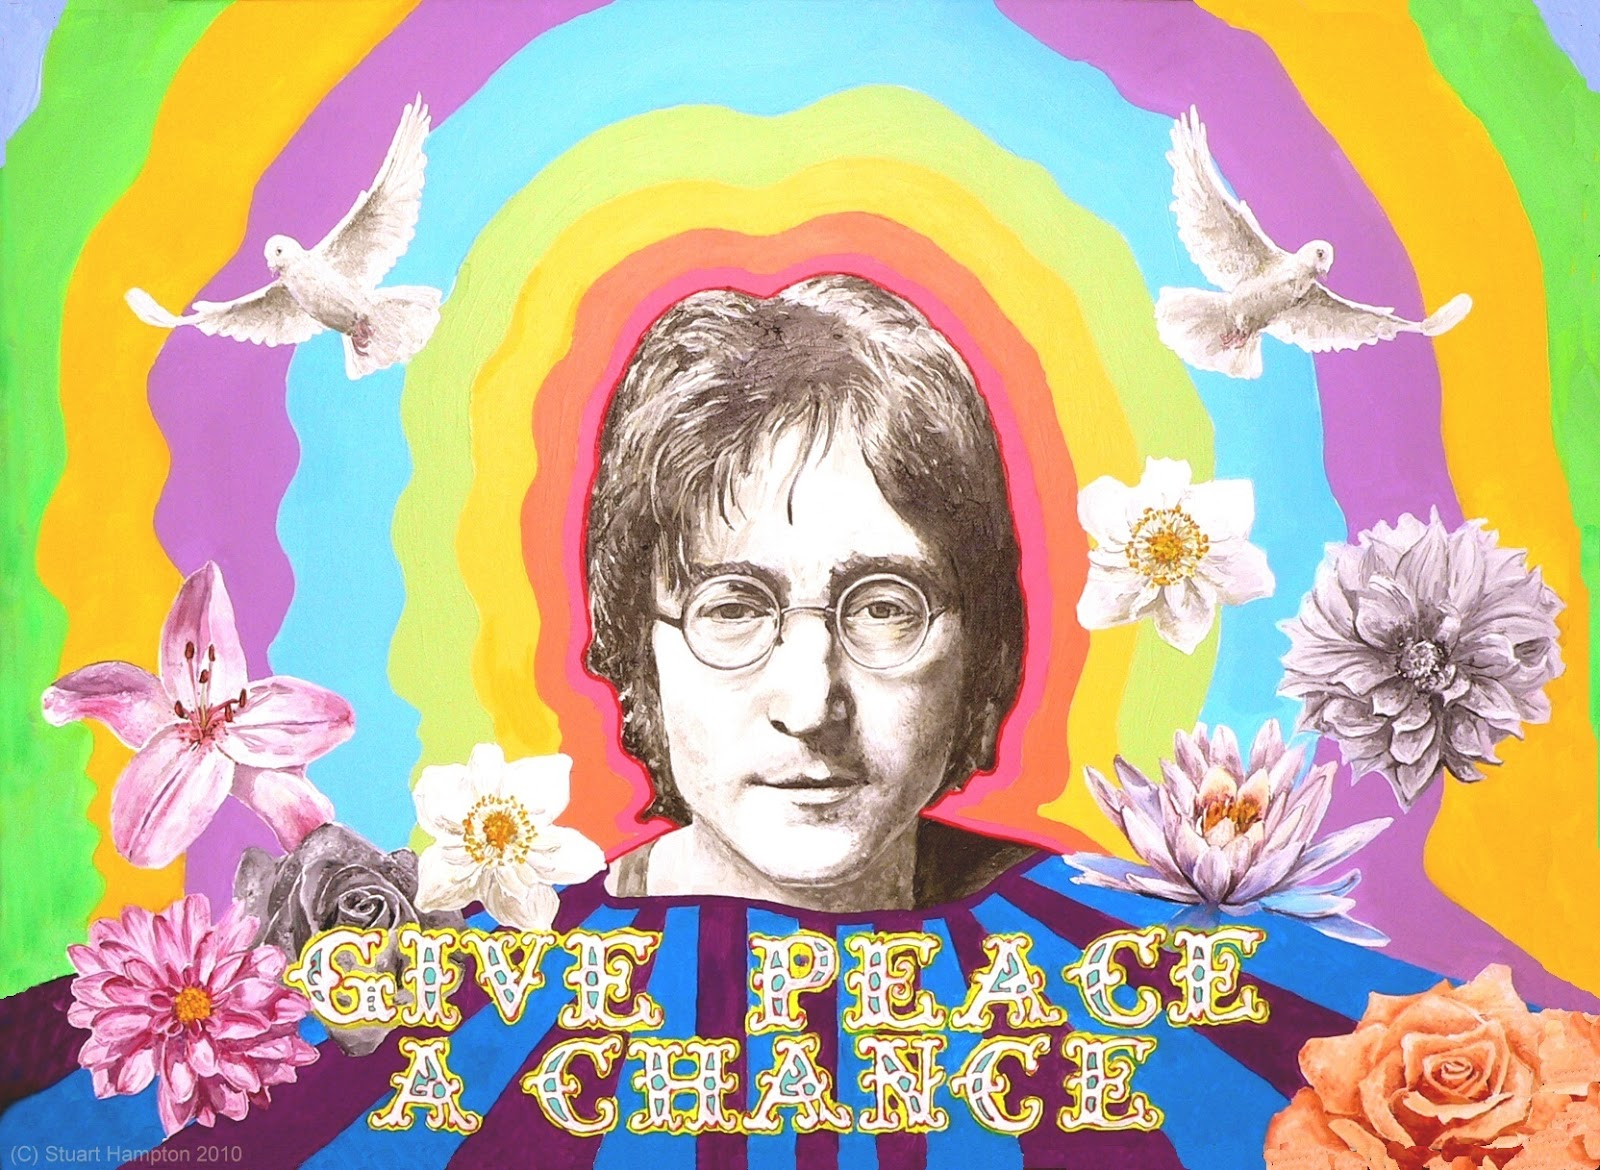 Bildresultat för Happy Birthday John Lennon